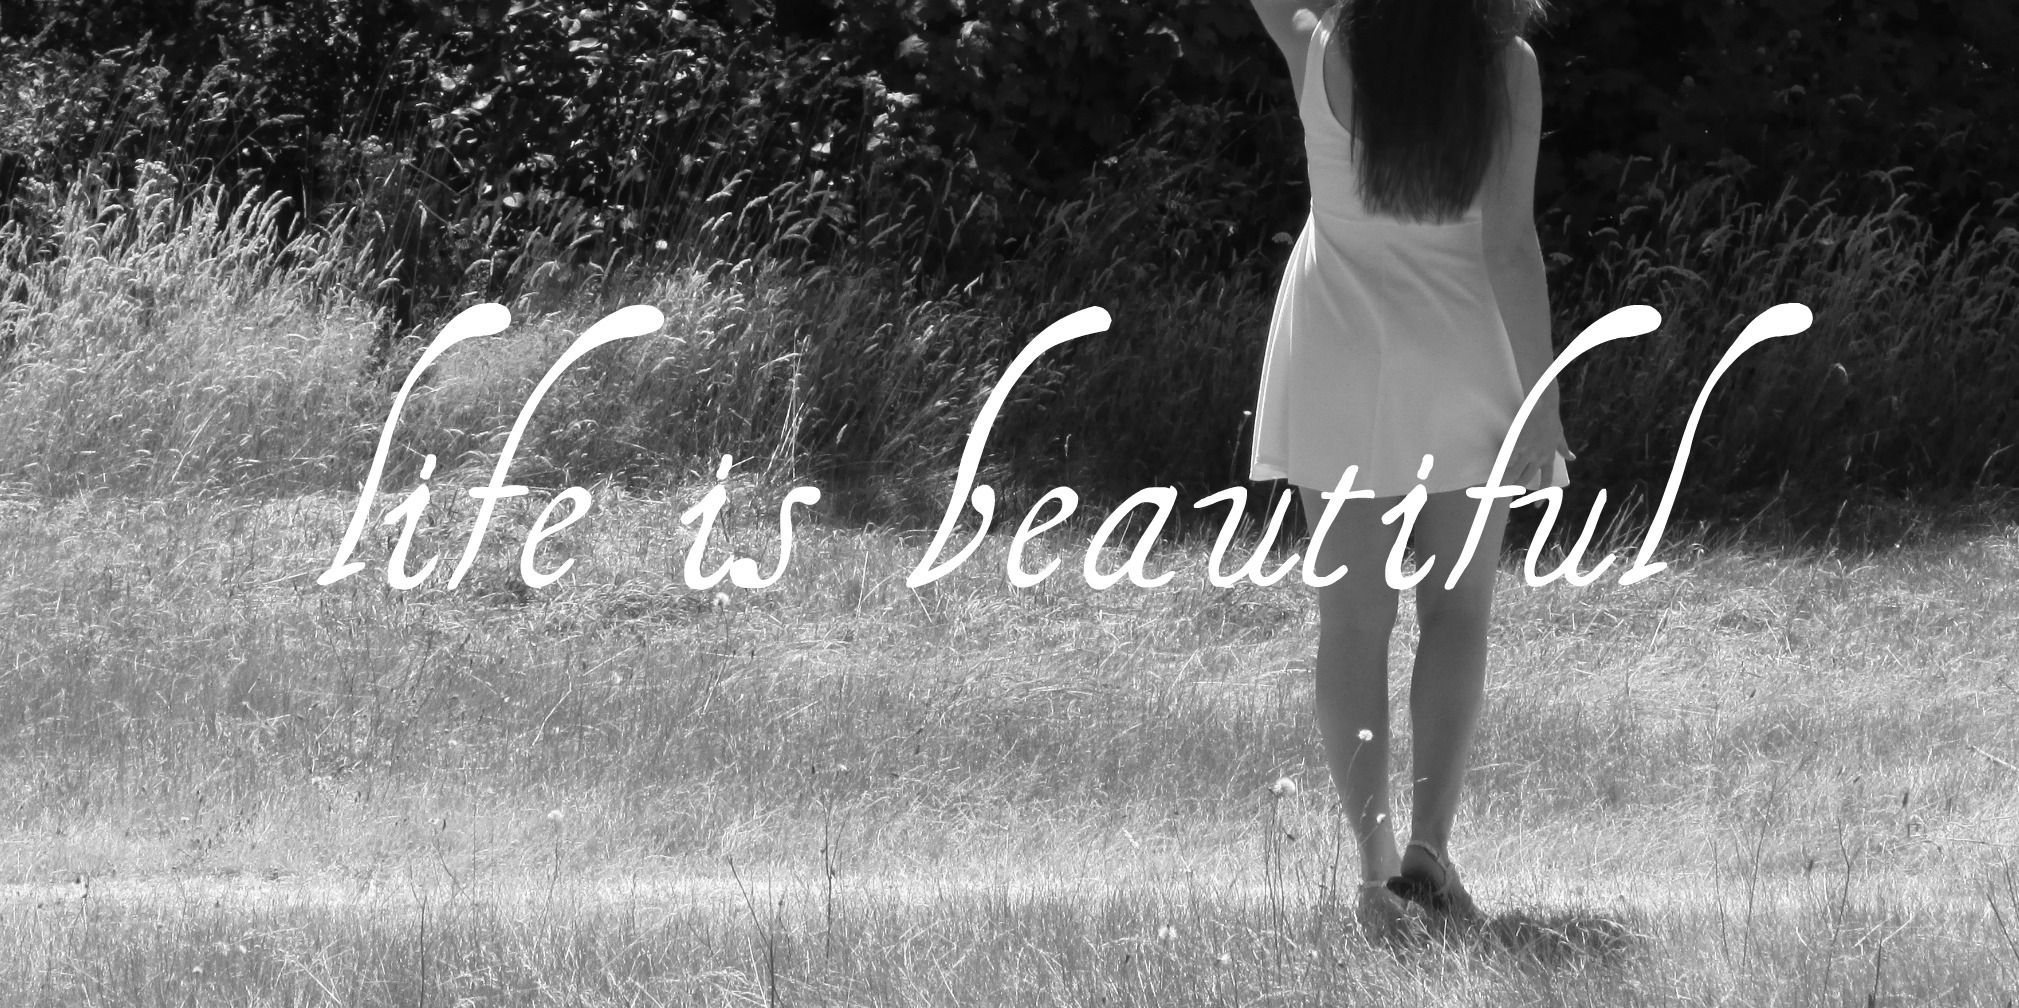 Life is beautiful fb cover photo quotes life isabelle choi choi romantic at heart summer girly kelliepaige sunshine